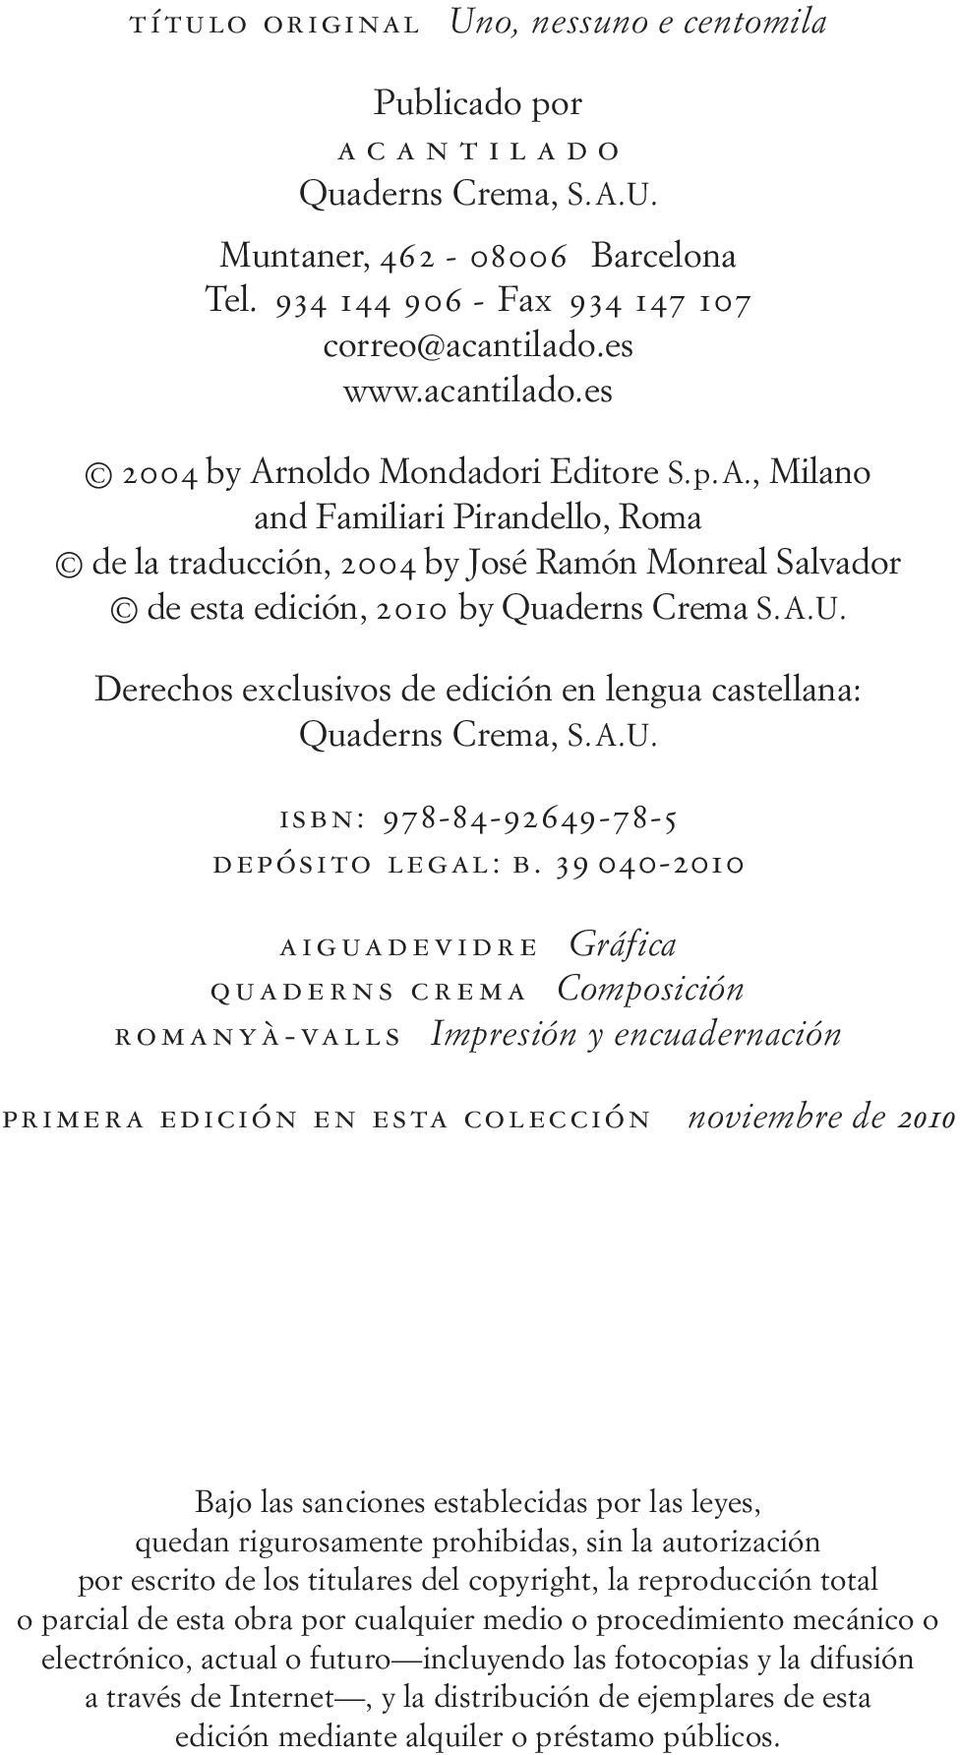 Derechos exclusivos de edición en lengua castellana: Quaderns Crema, S. A. U. isbn: 978-84-92649-78-5 depósito legal: b.